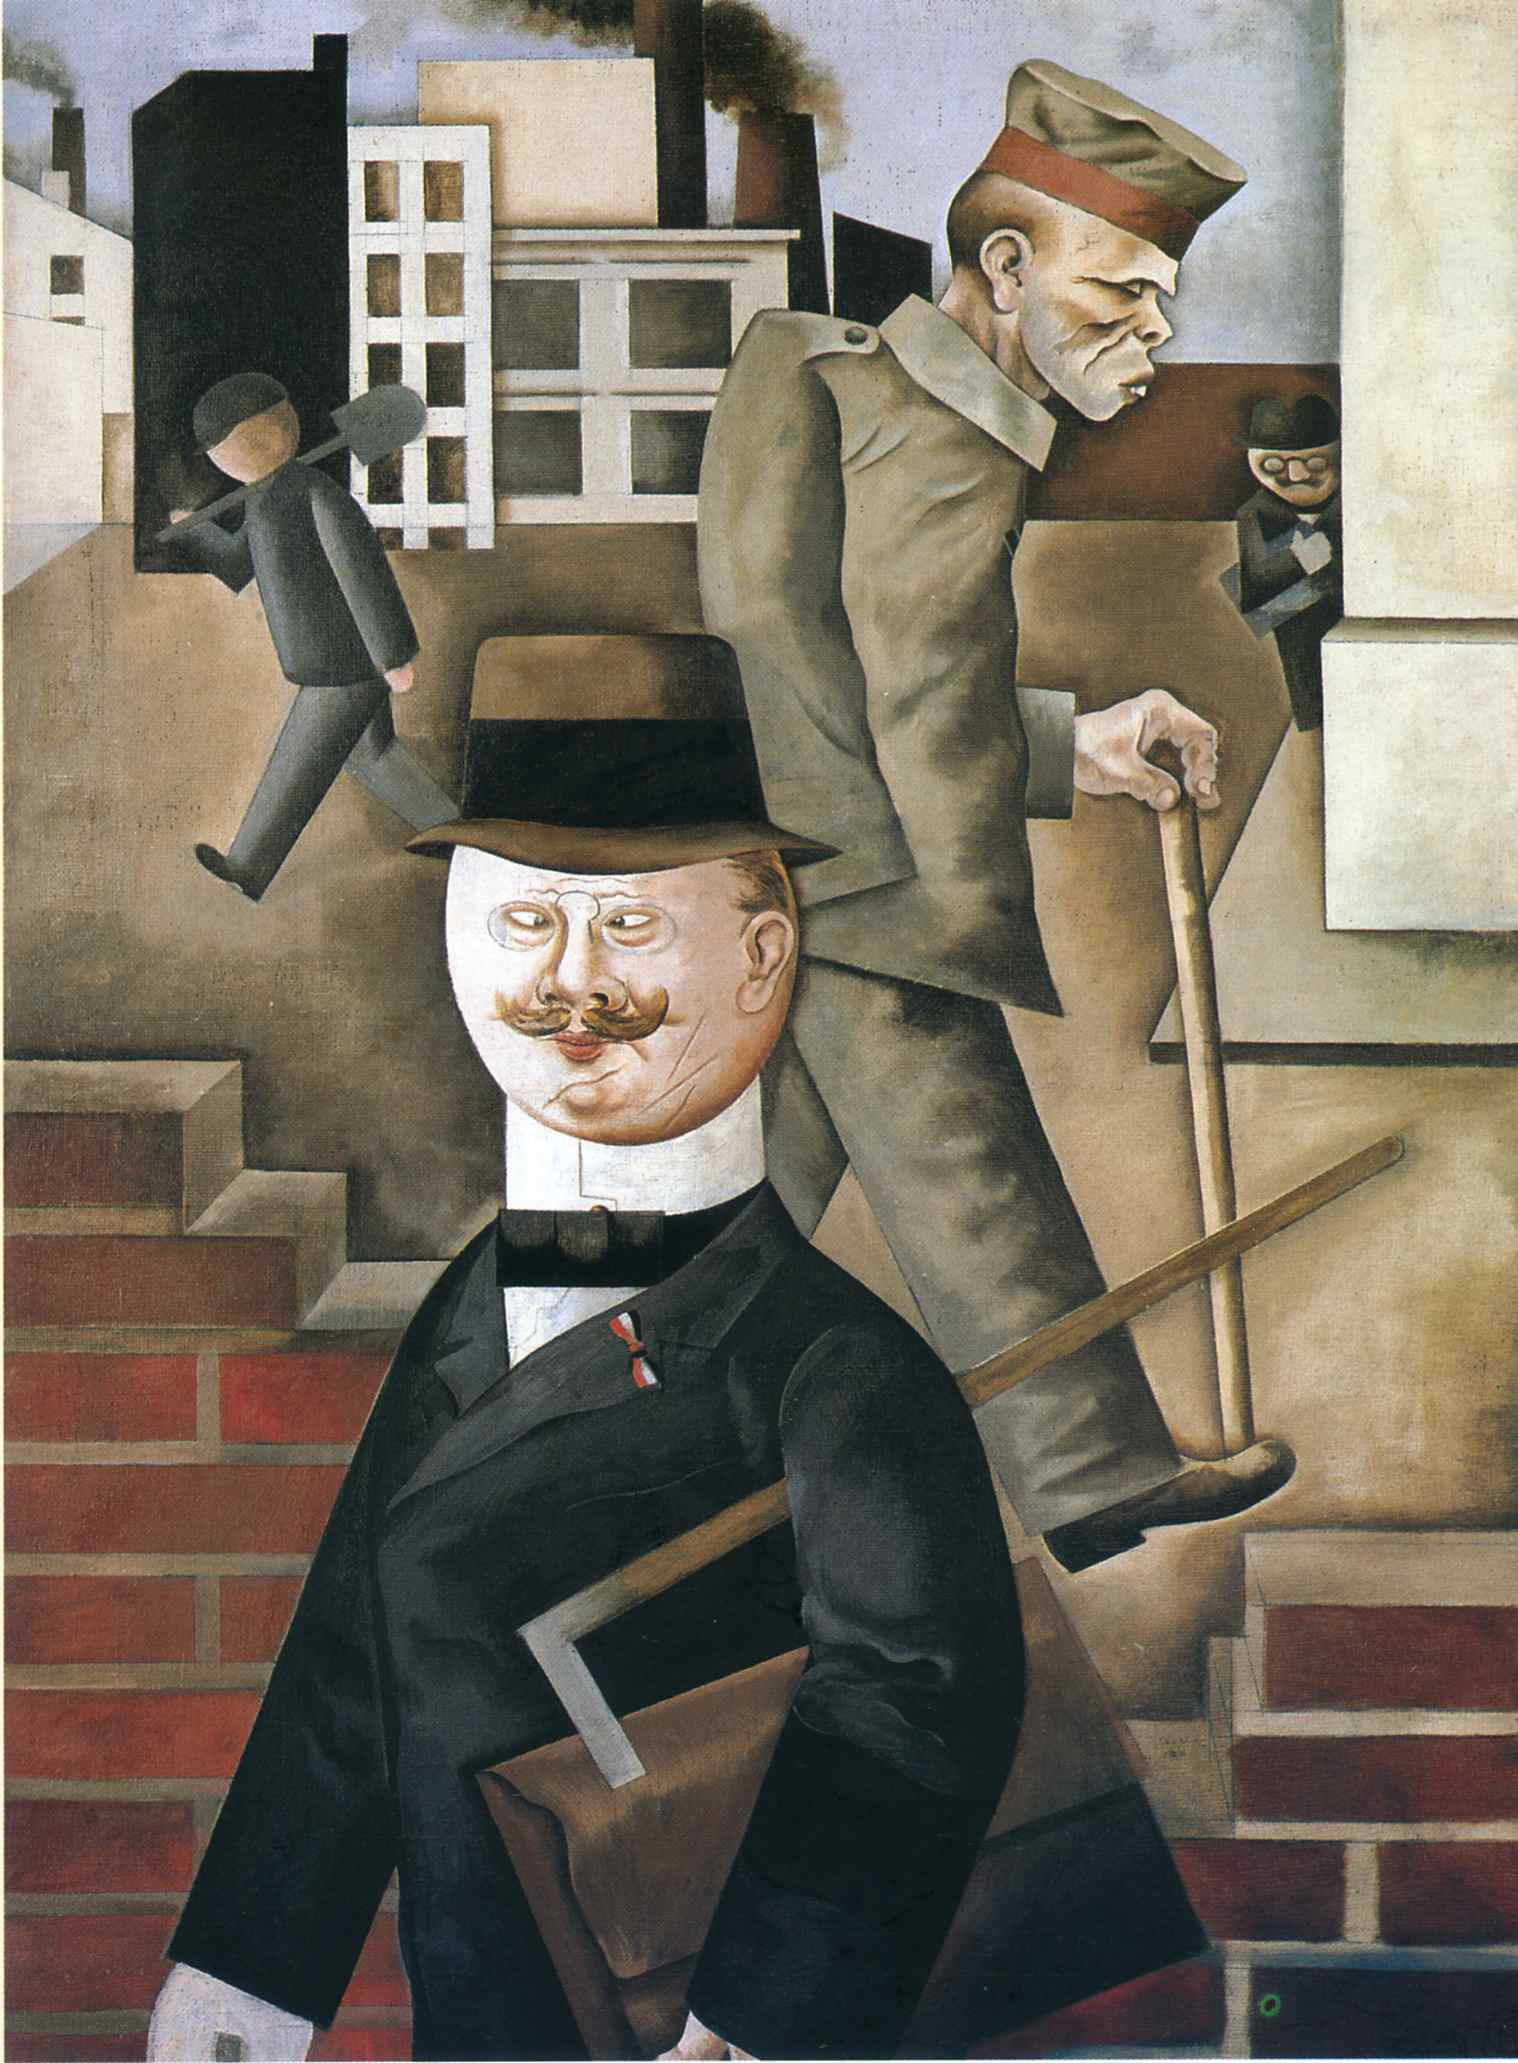 http://uploads0.wikipaintings.org/images/george-grosz/the-gray-day-1921.jpg